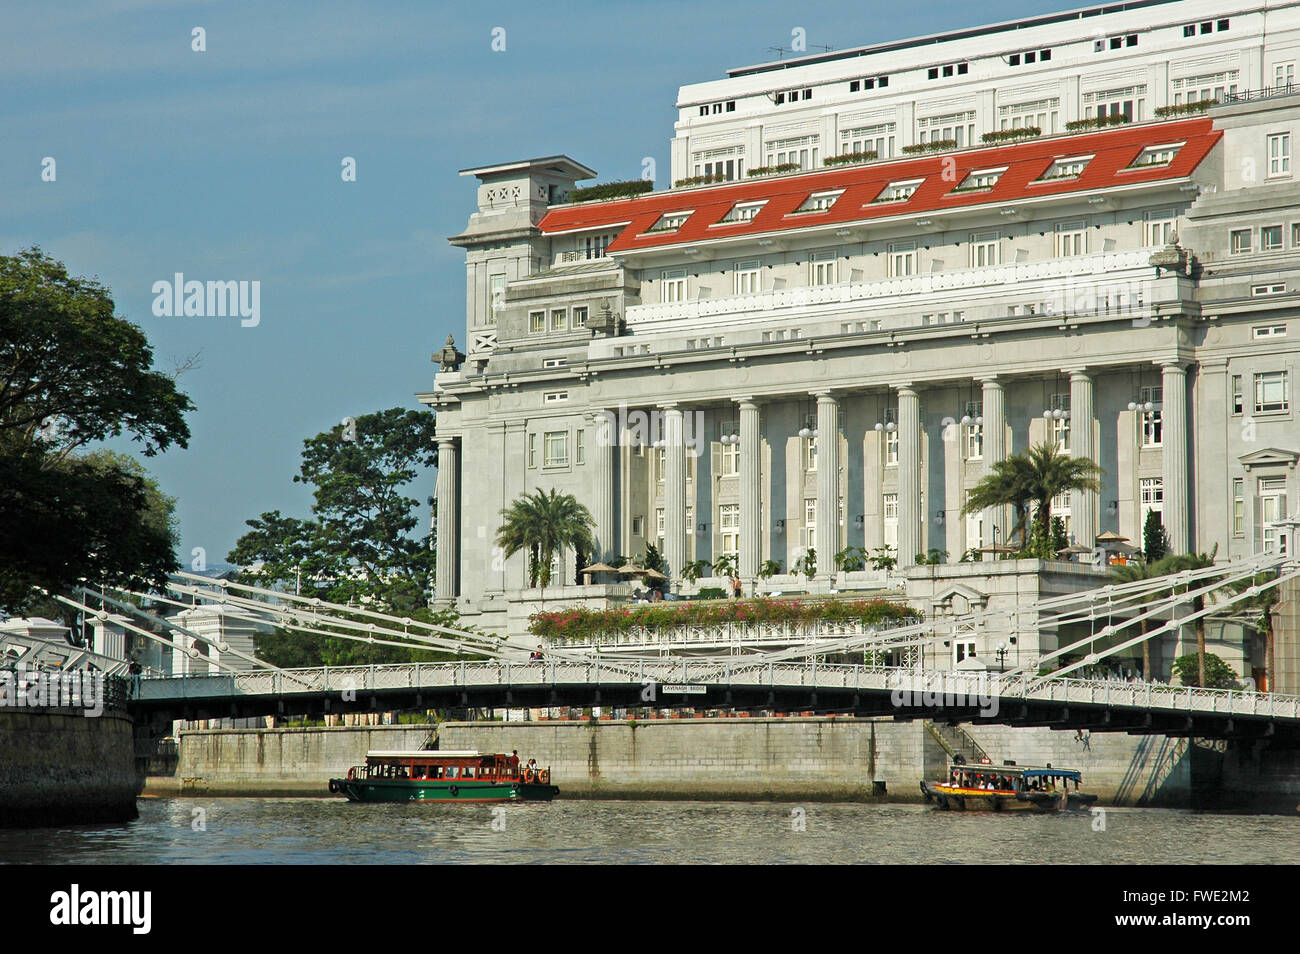 The Fullerton Hotel and Cavenagh Bridge, from the Singapore River. - Stock Image